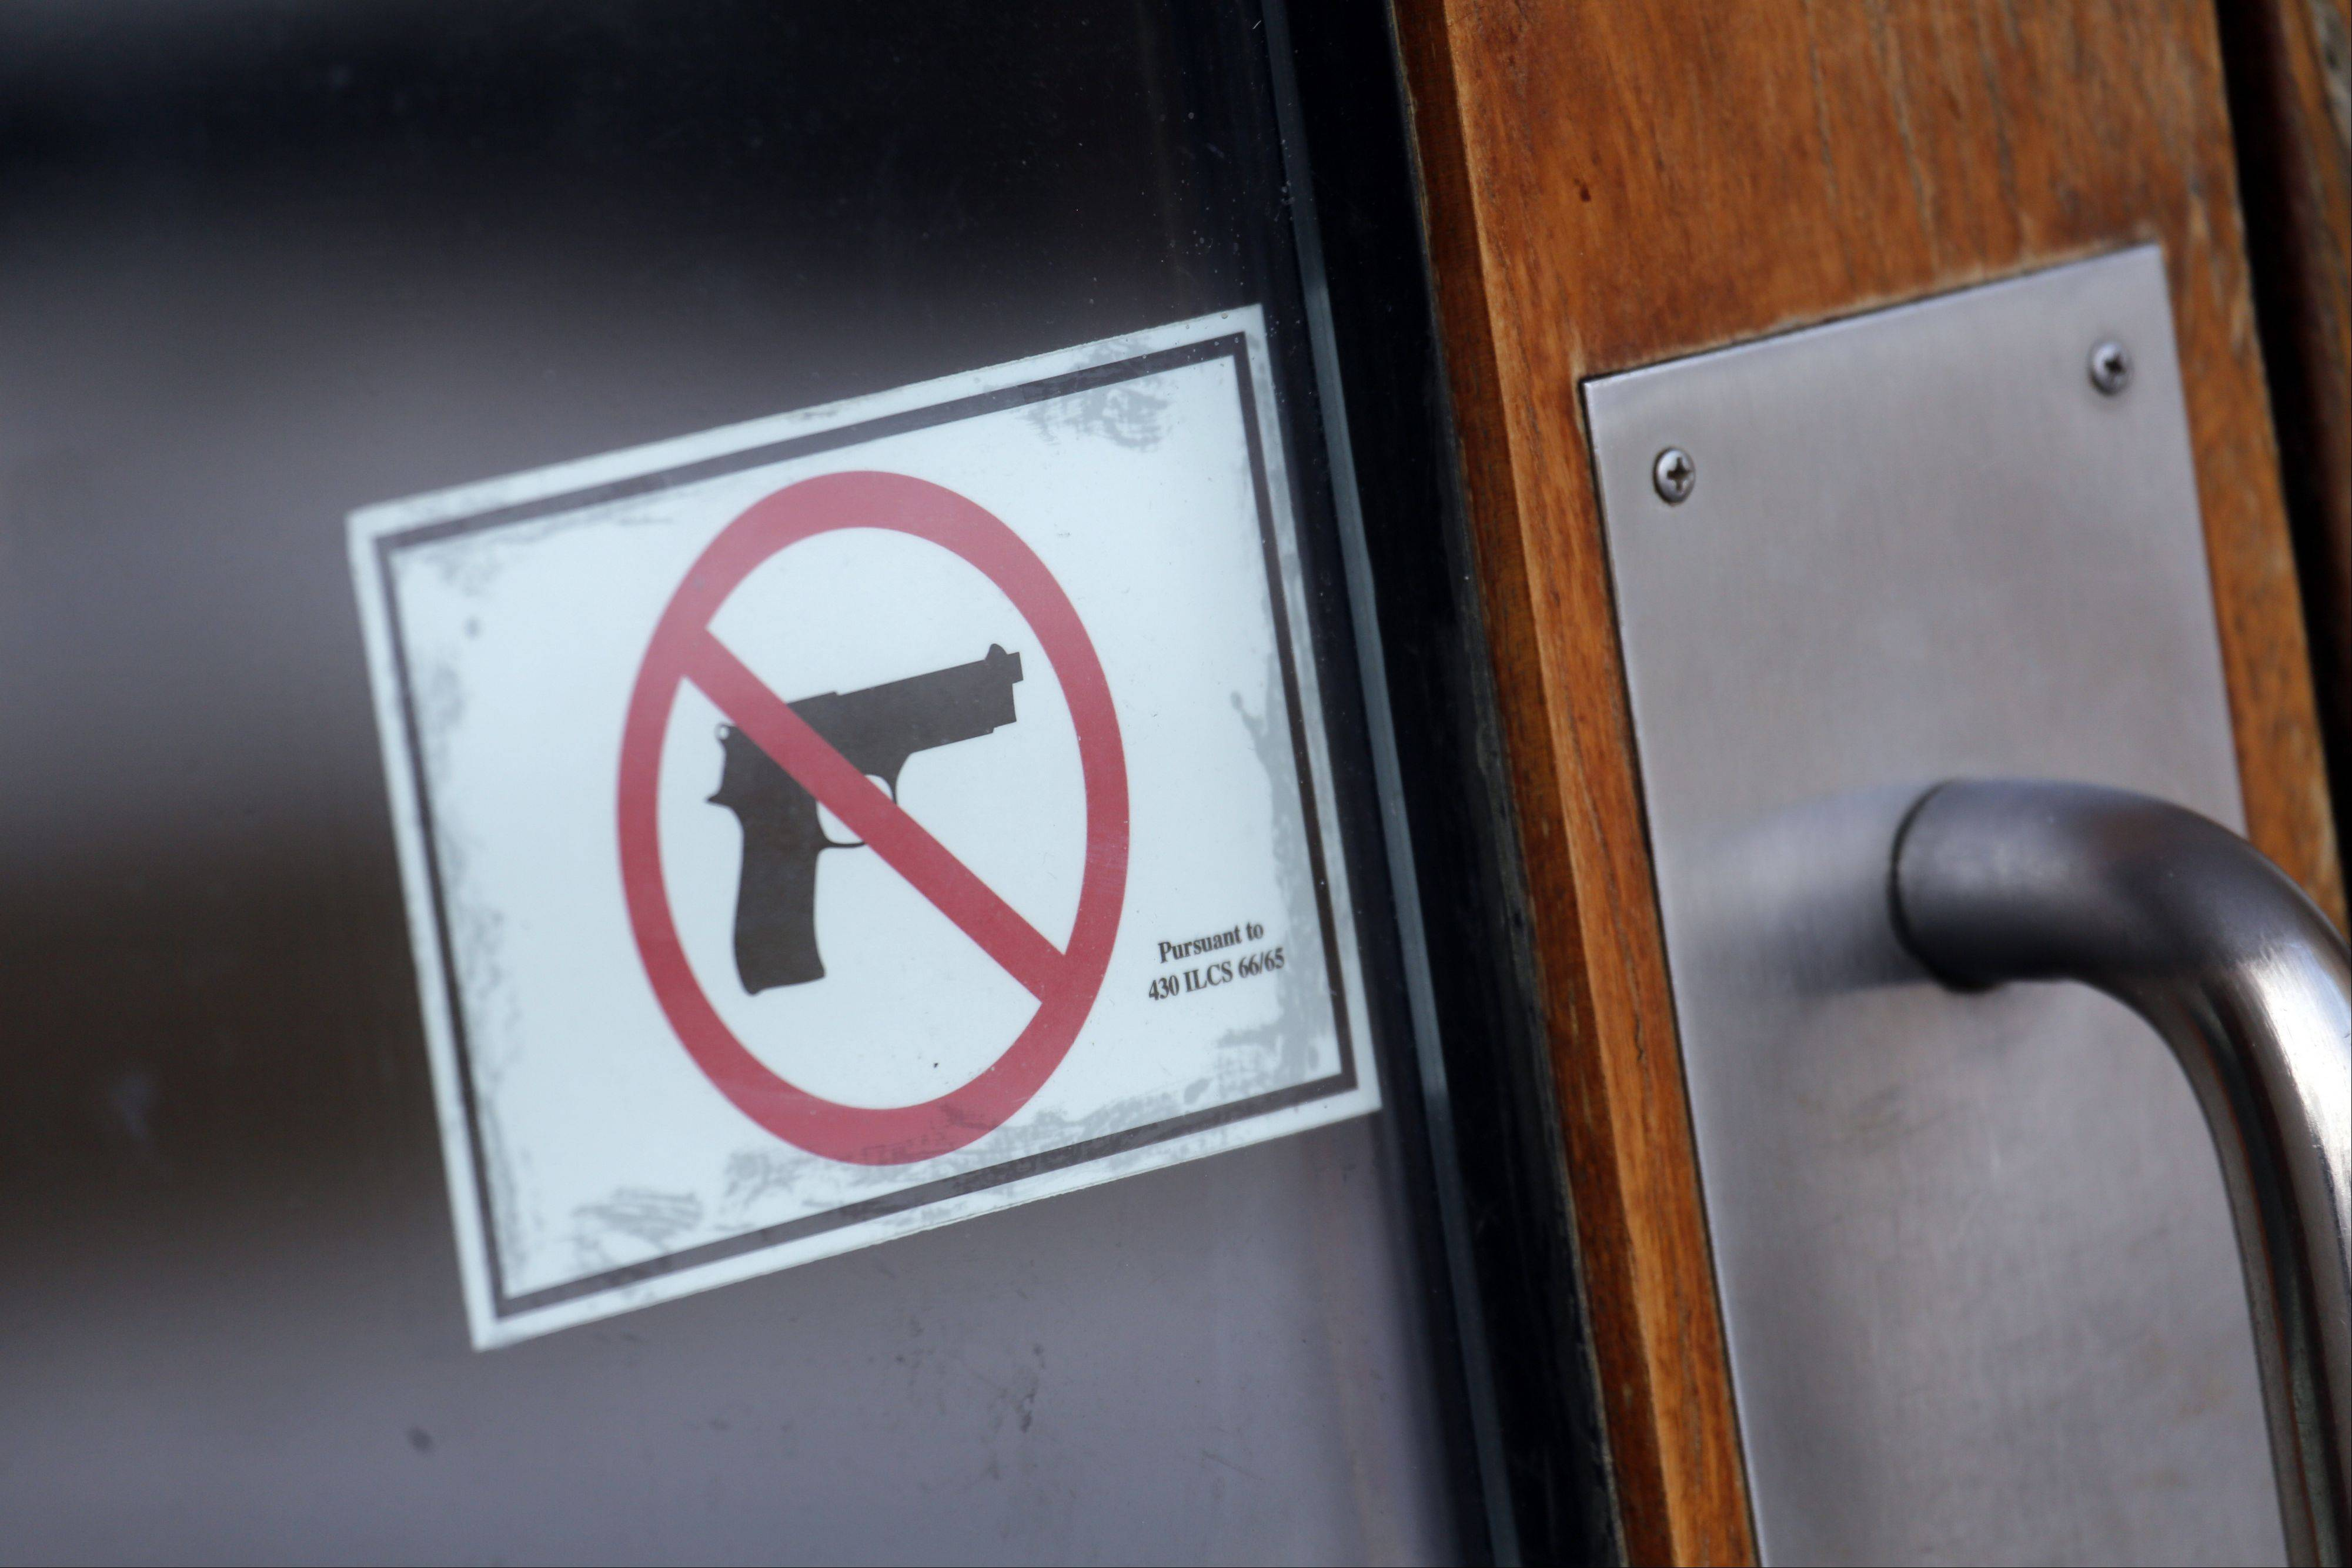 Gun-free zone signs are plastered at the Kane County Judicial Center. The state's new concealed carry law prohibits anyone other than law enforcement officials from carrying concealed handguns into public buildings.